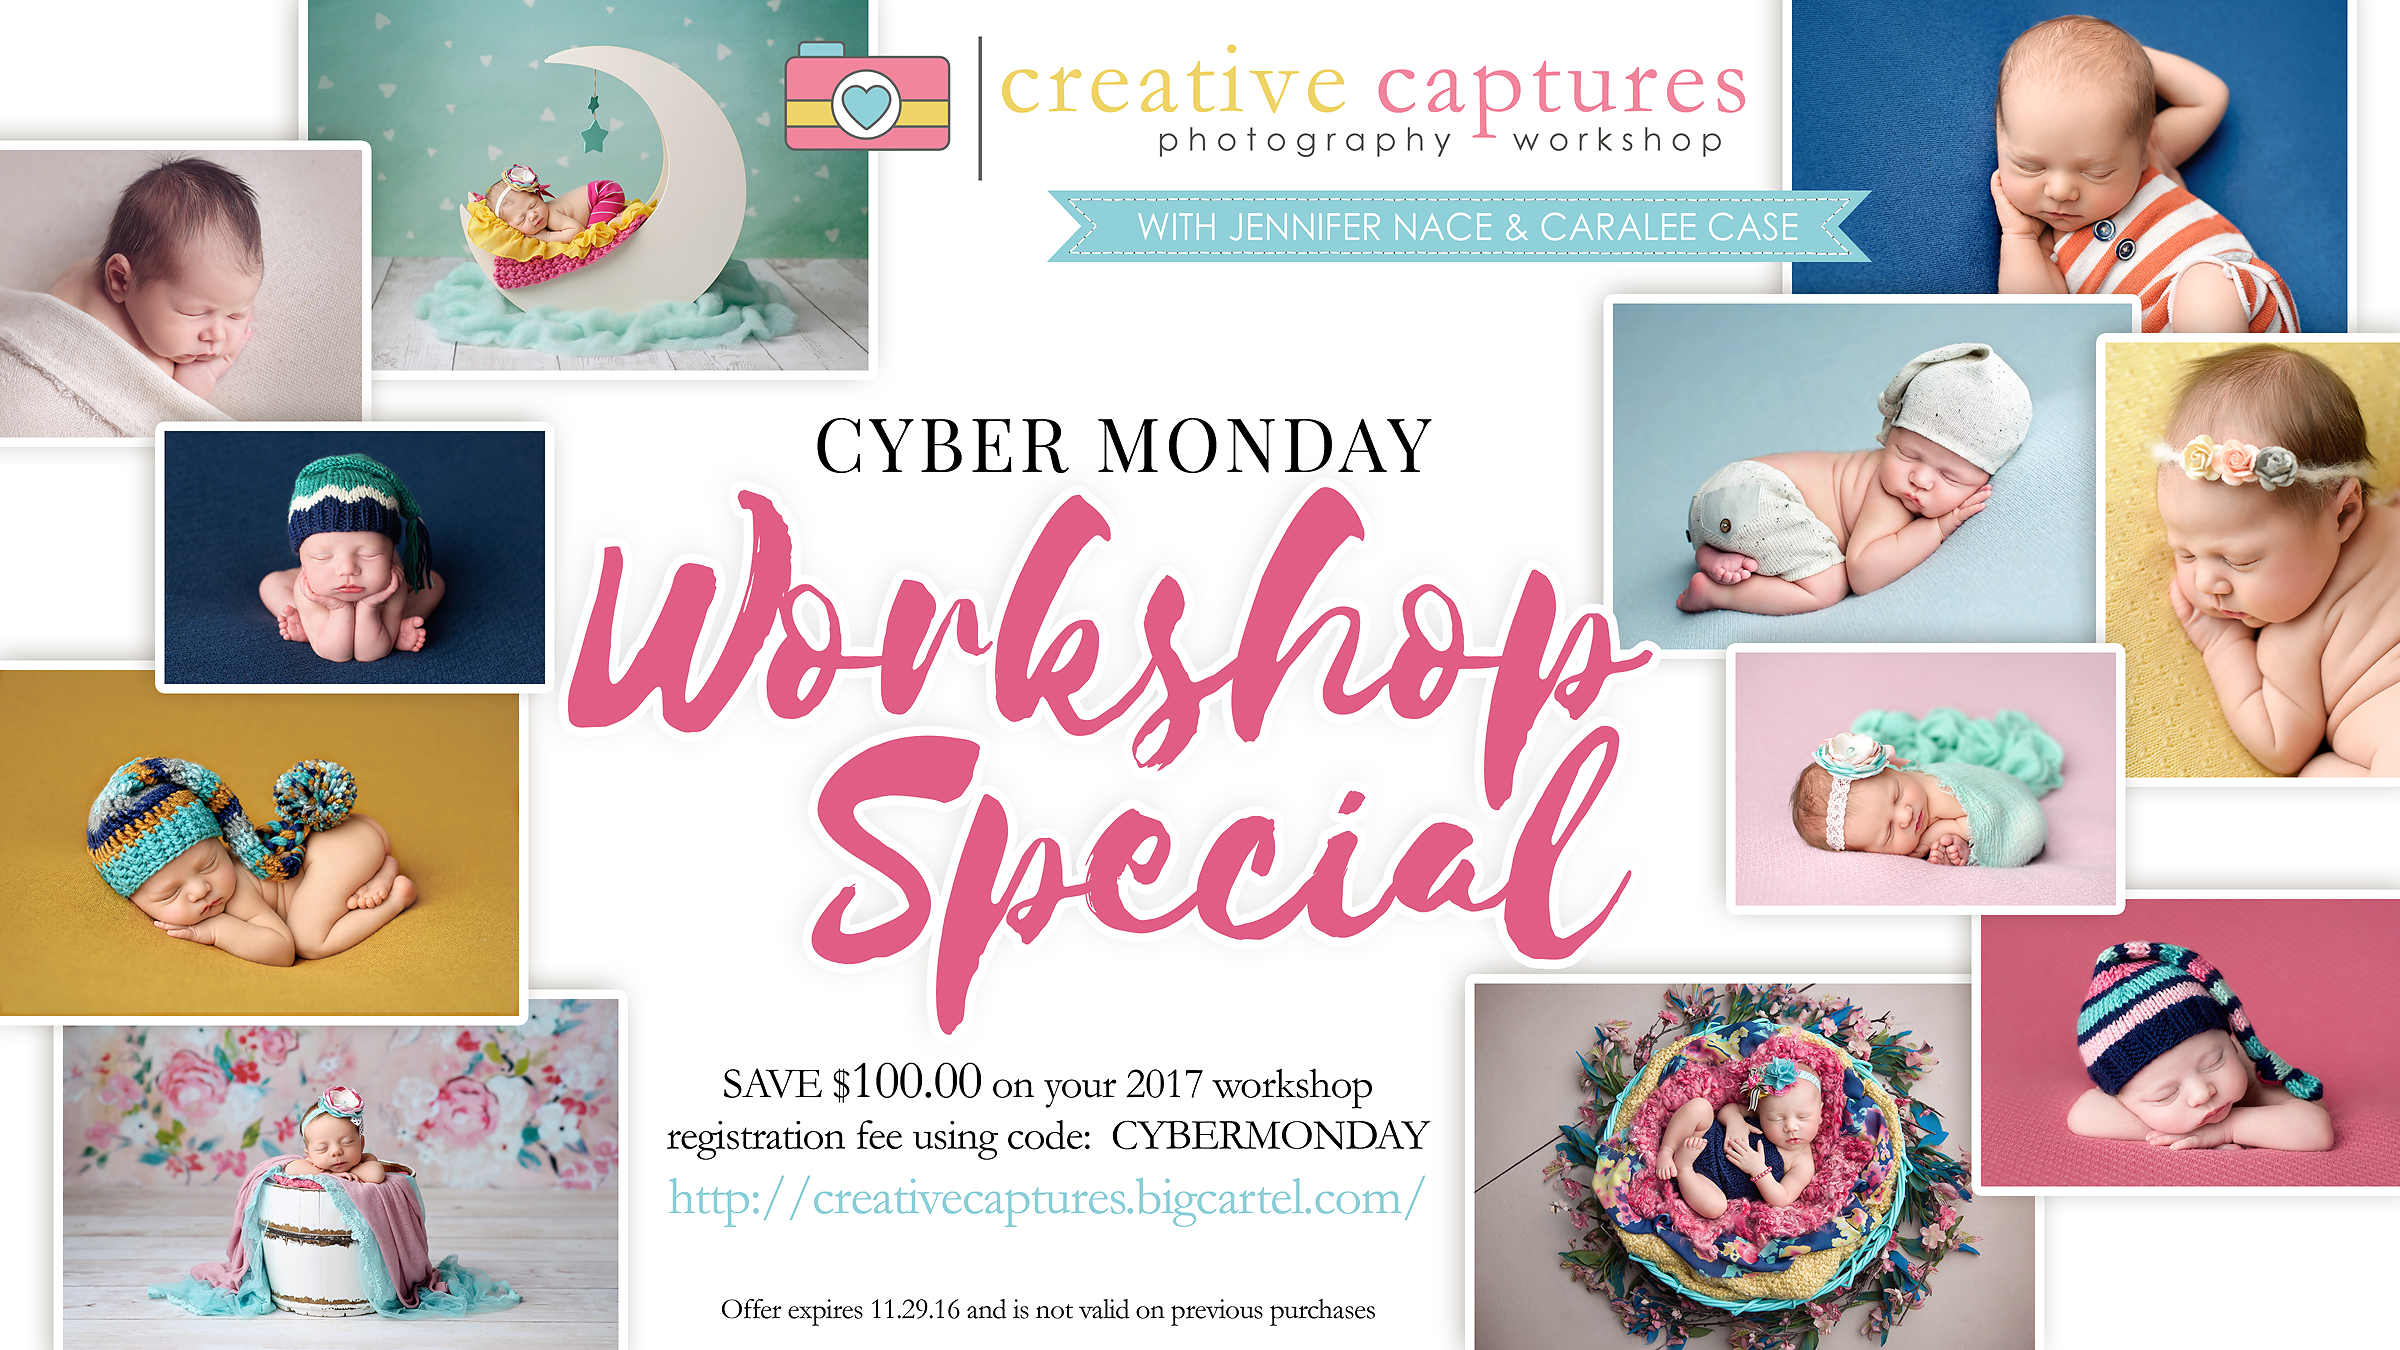 Cyber Monday Workshop Special